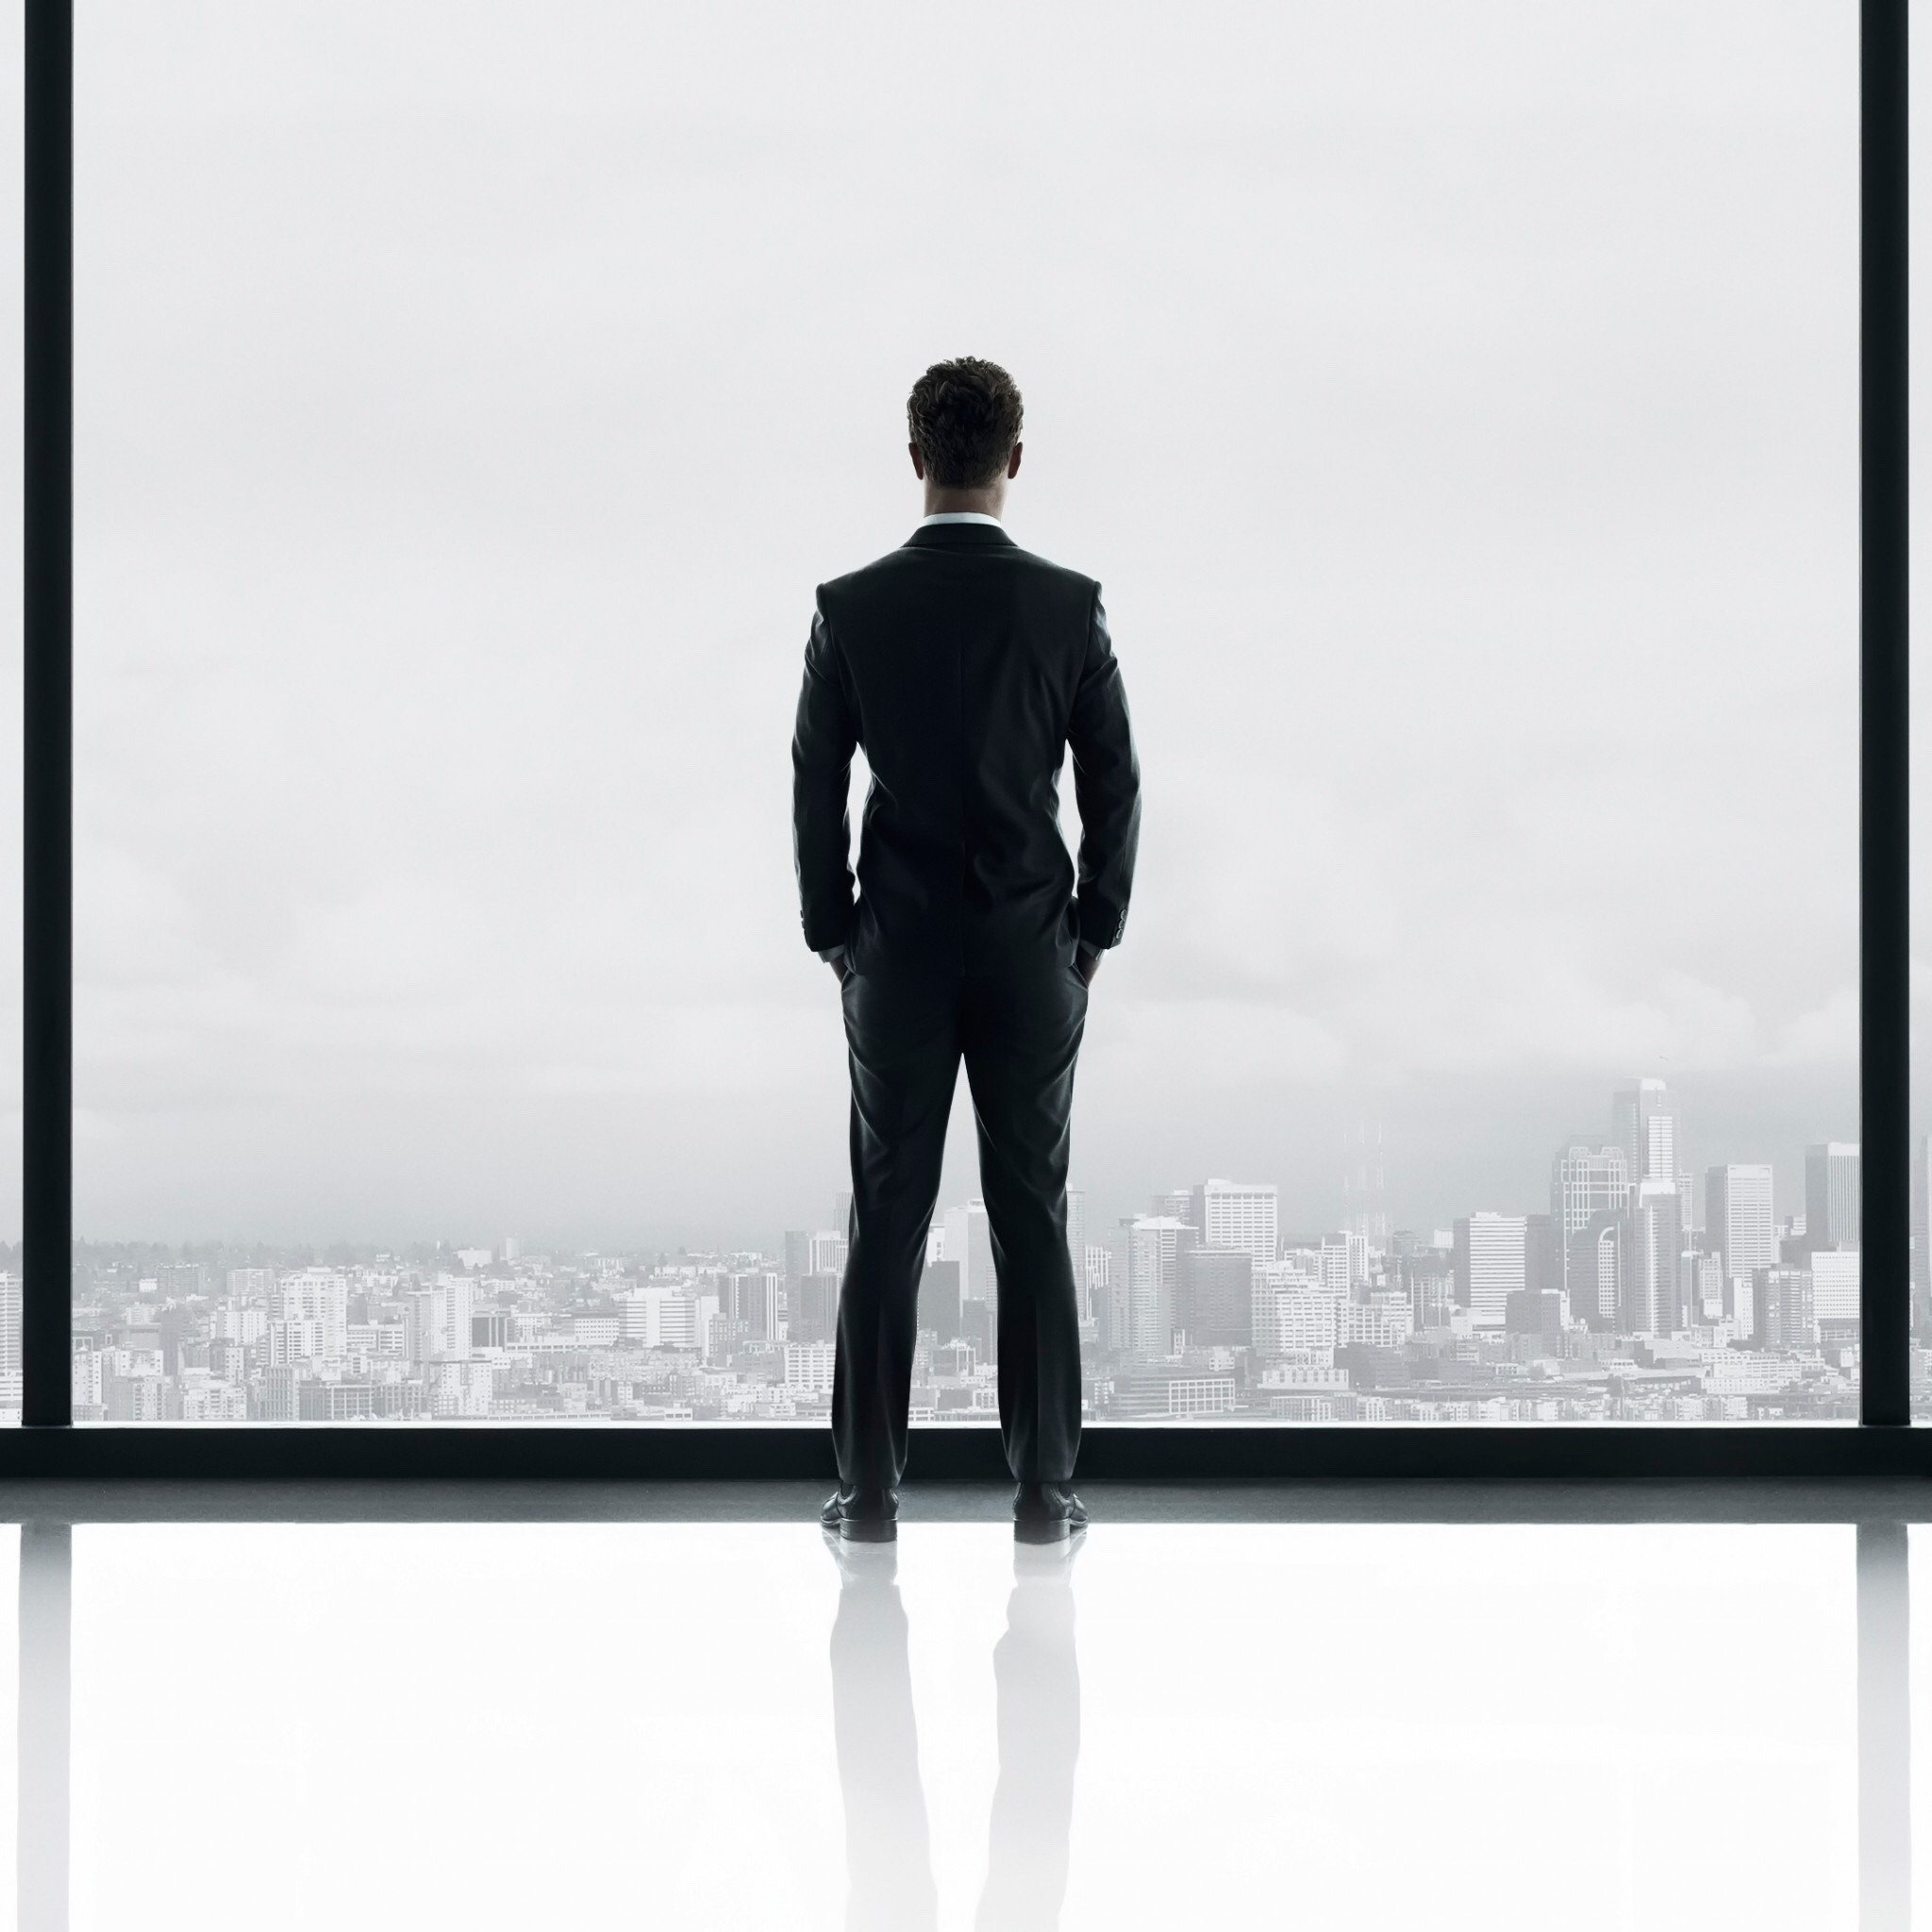 Christian Grey, standing in a window looking out over Seattle